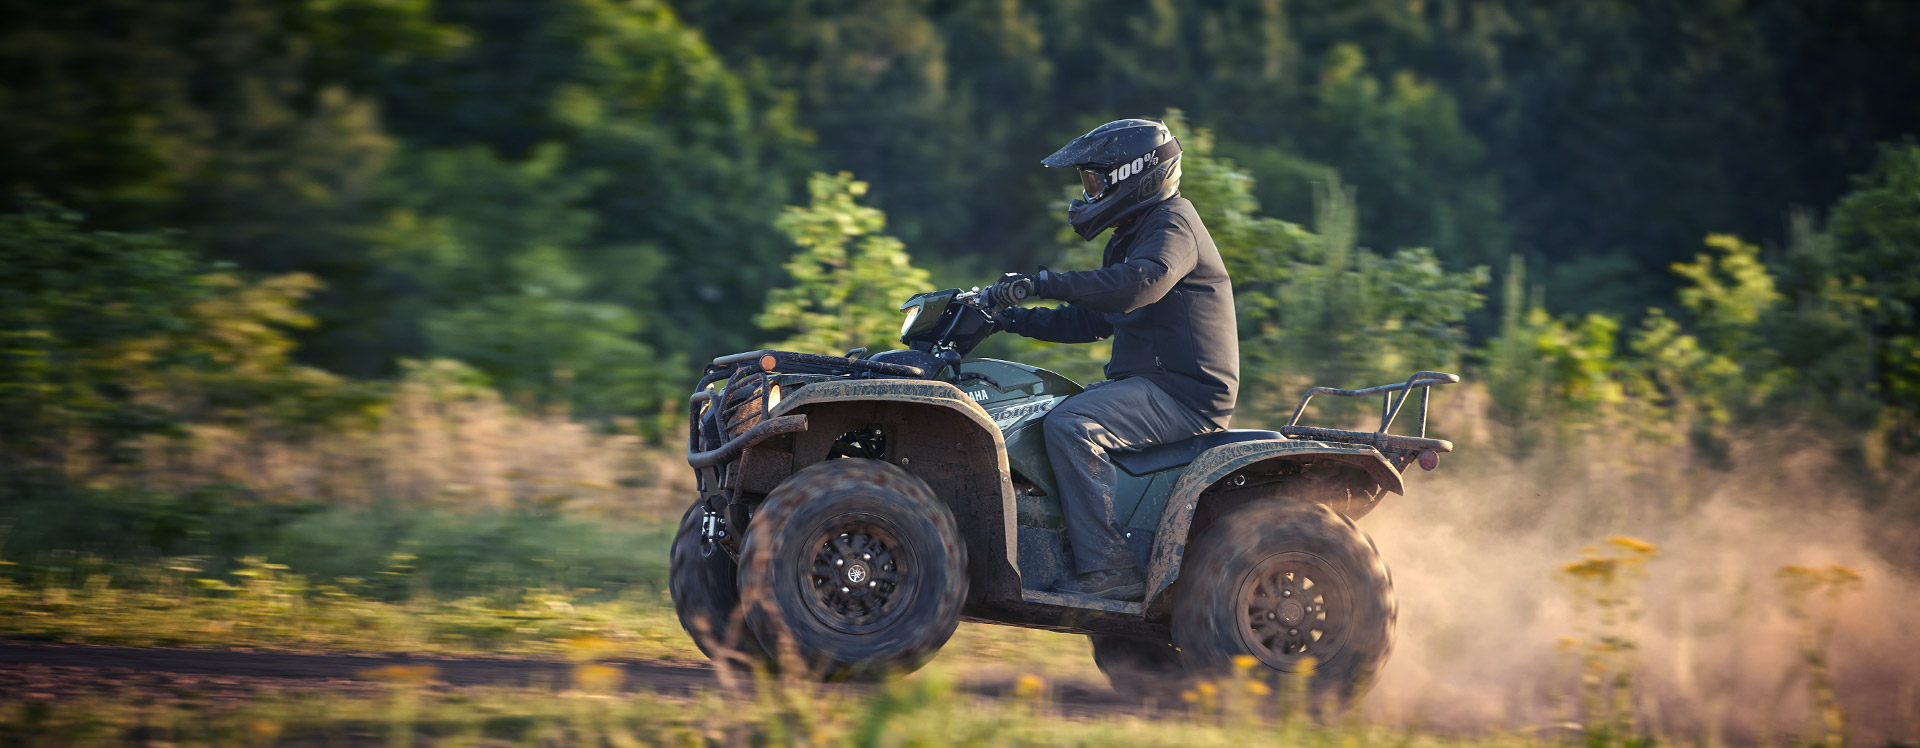 2020 Yamaha Kodiak-700-Eps